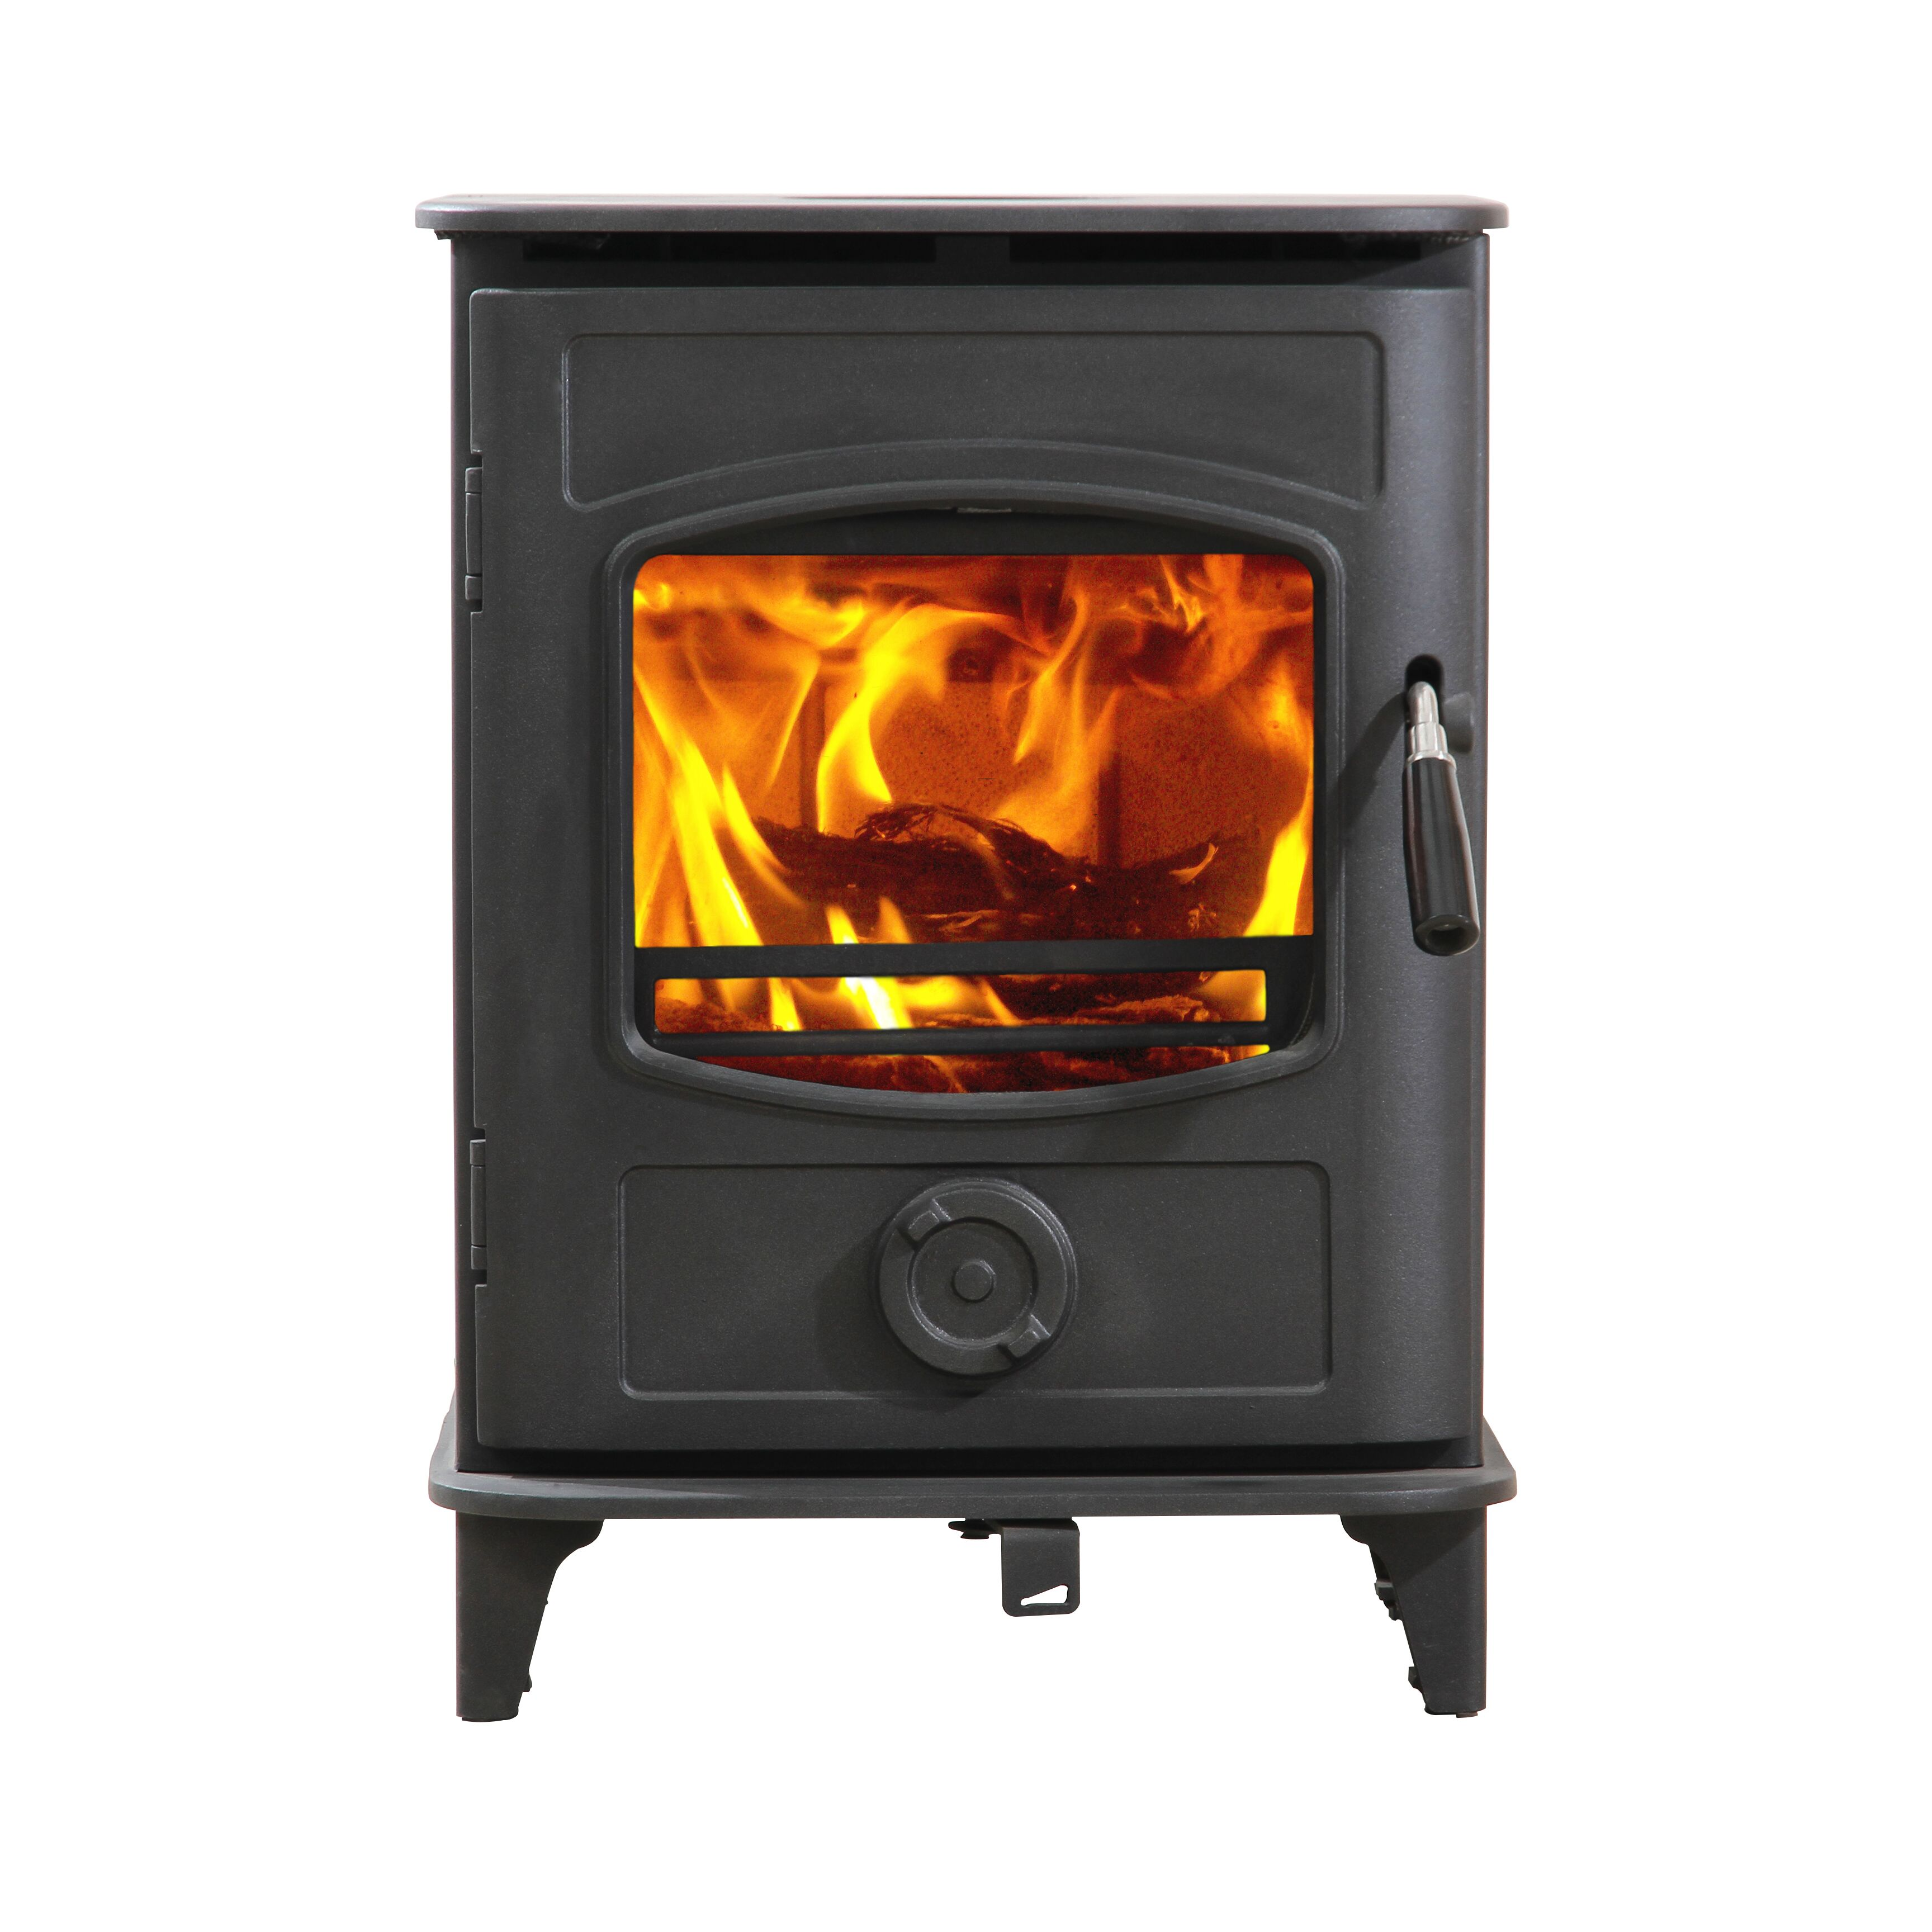 Hiflame Graphite 5 HF905UA UL EPA certified 85% efficiency wood burning stove for homely used